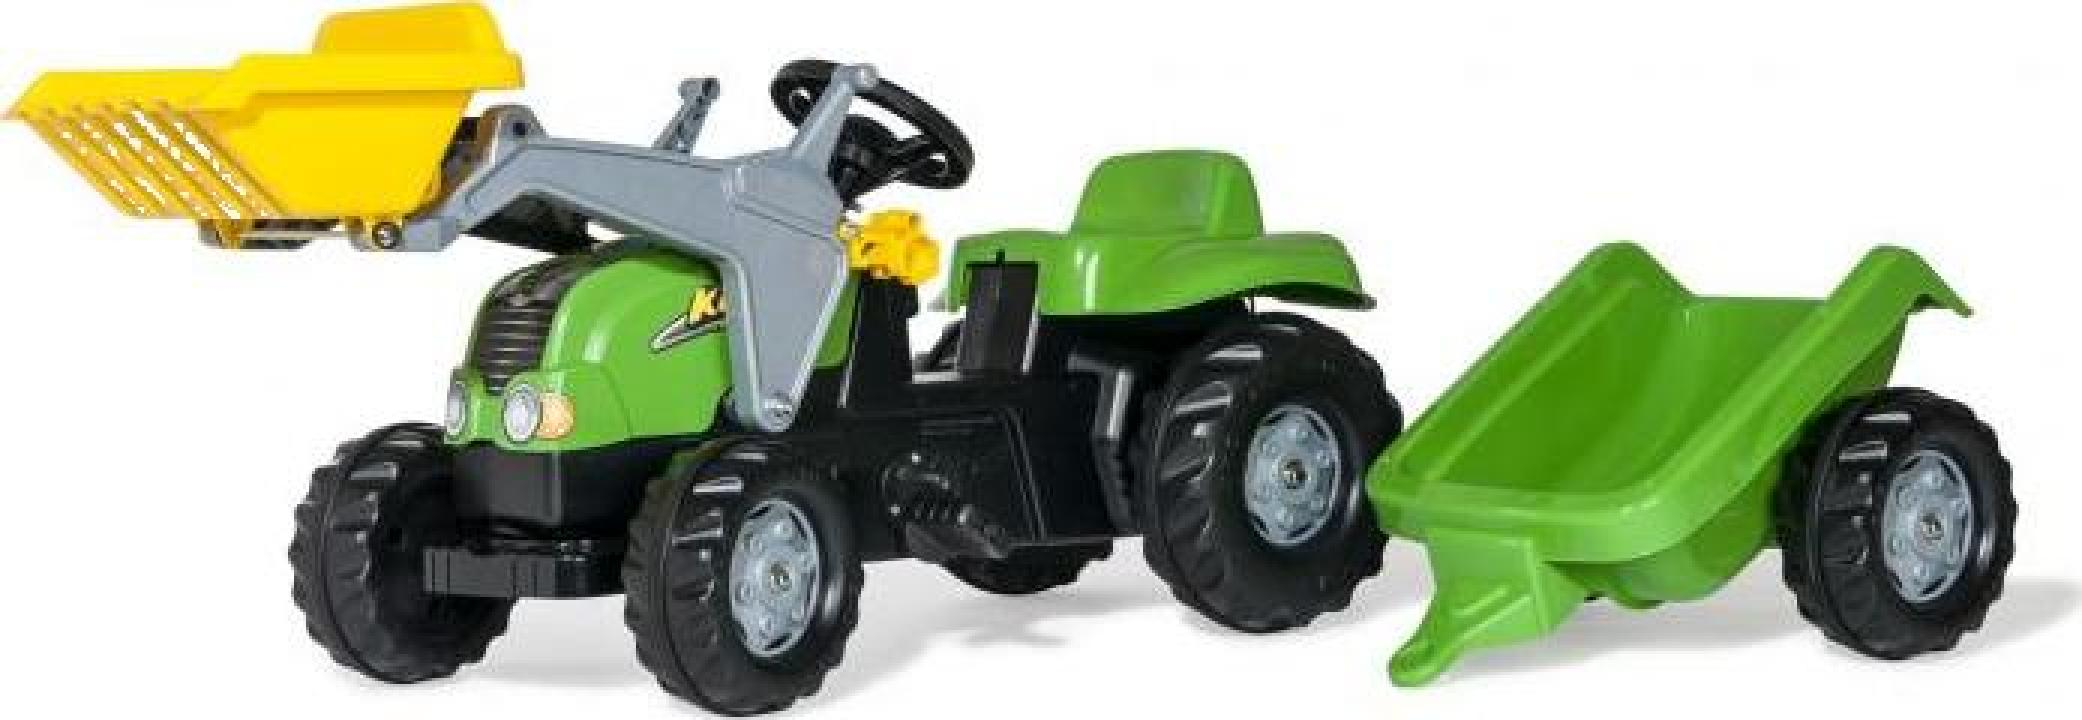 Jucarie tractor cu pedale, remorca si cupa Rolly Toys-X